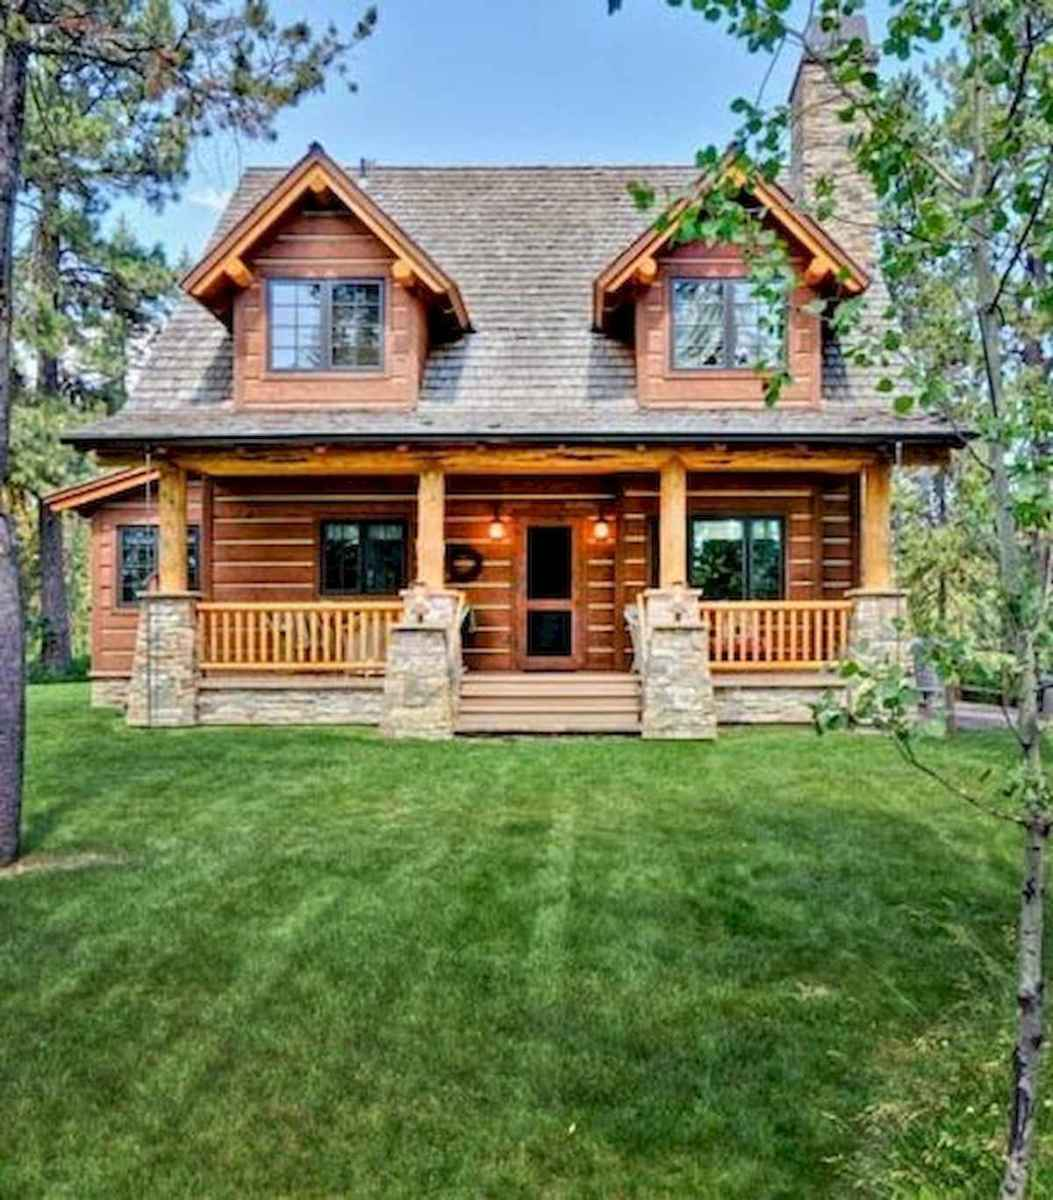 75 Great Log Cabin Homes Plans Design Ideas (4)